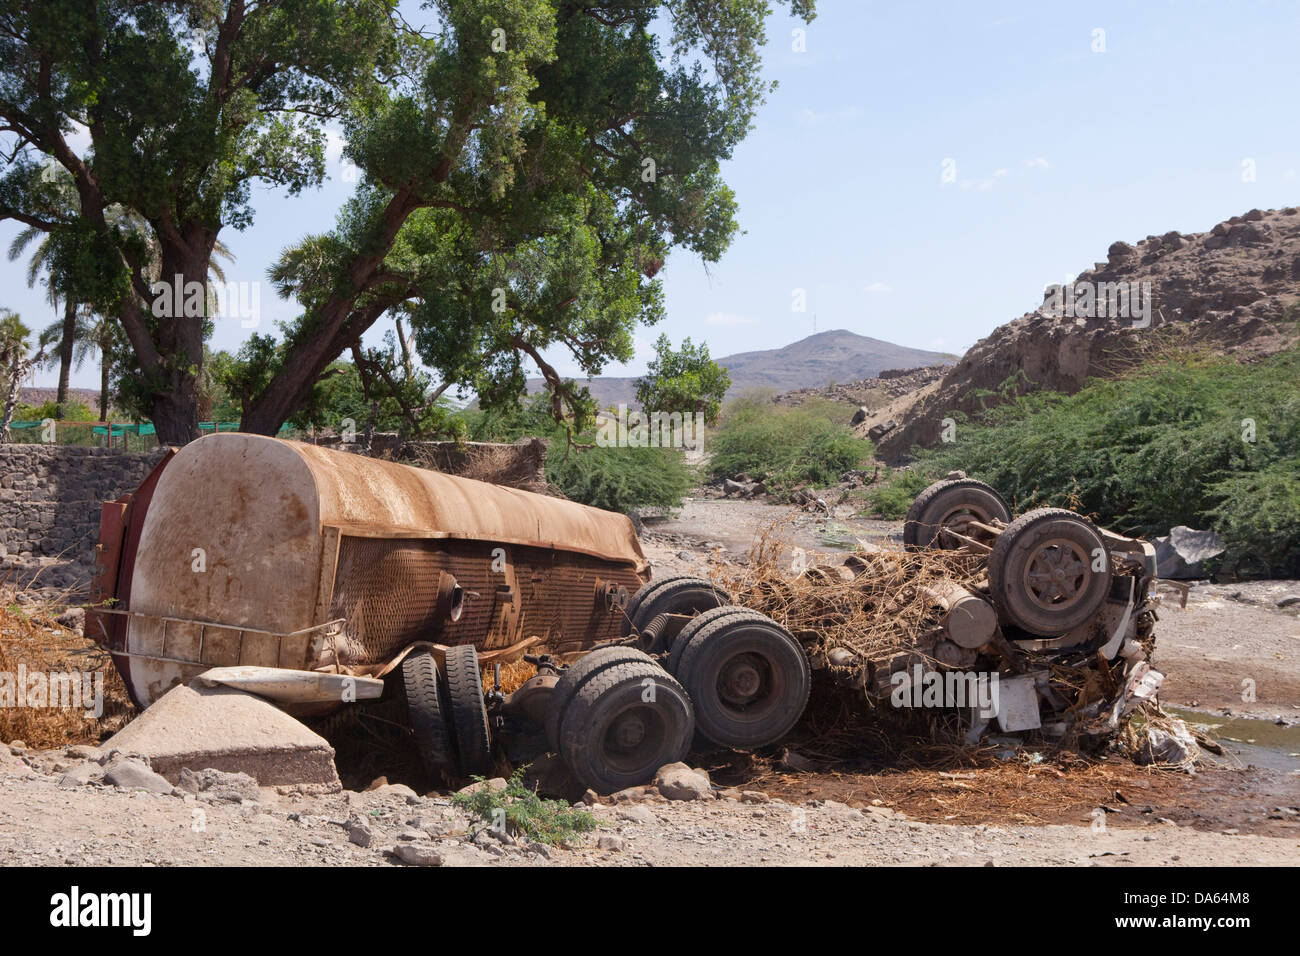 Traffic, accident, casualty, Djibouti, Africa, truck, tip, rusty - Stock Image